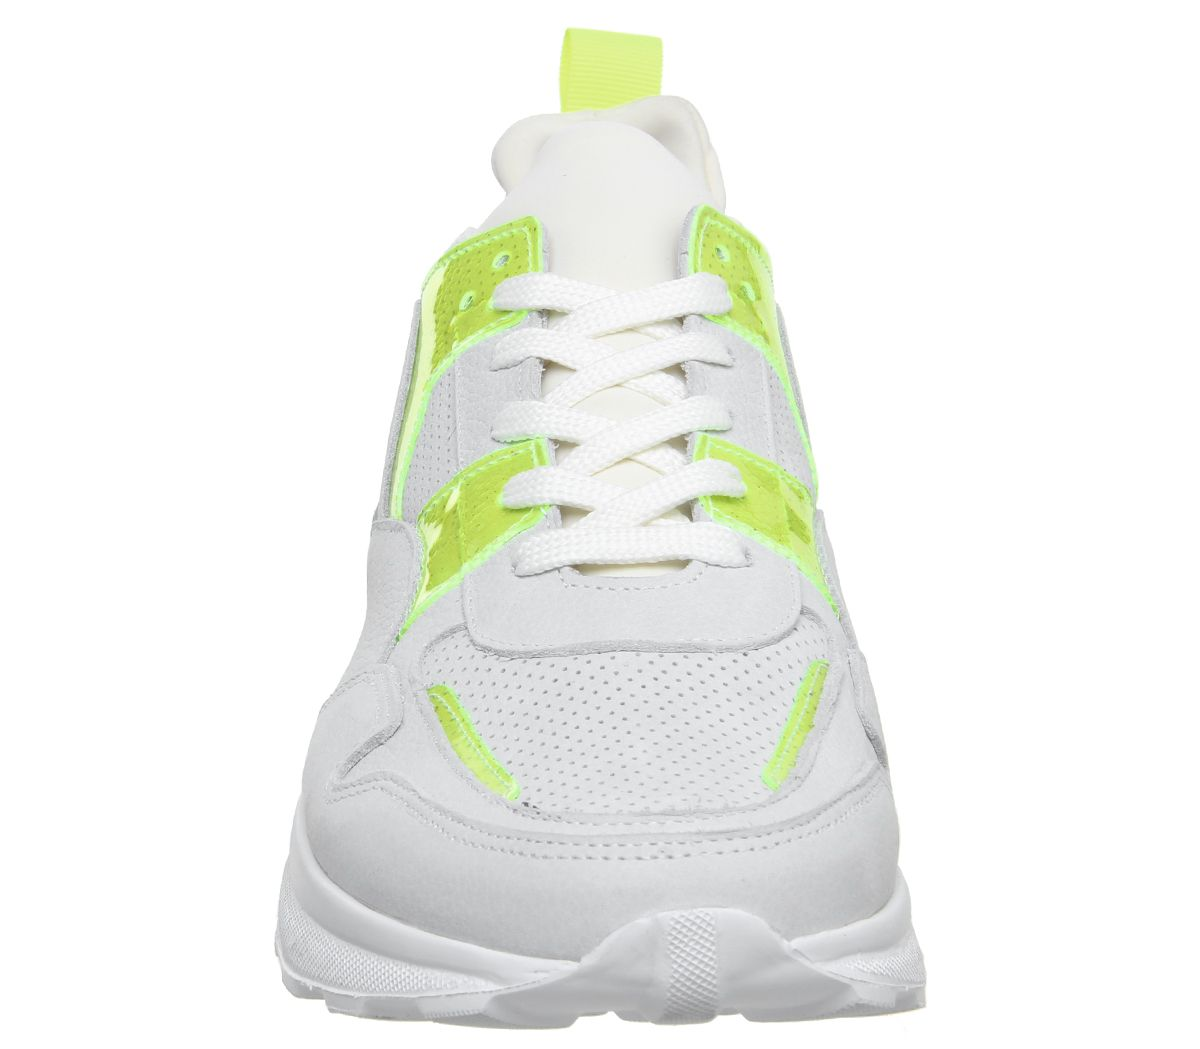 Mens-Office-Lacrosse-Trainers-White-Yellow-Nubuck-Casual-Shoes thumbnail 3